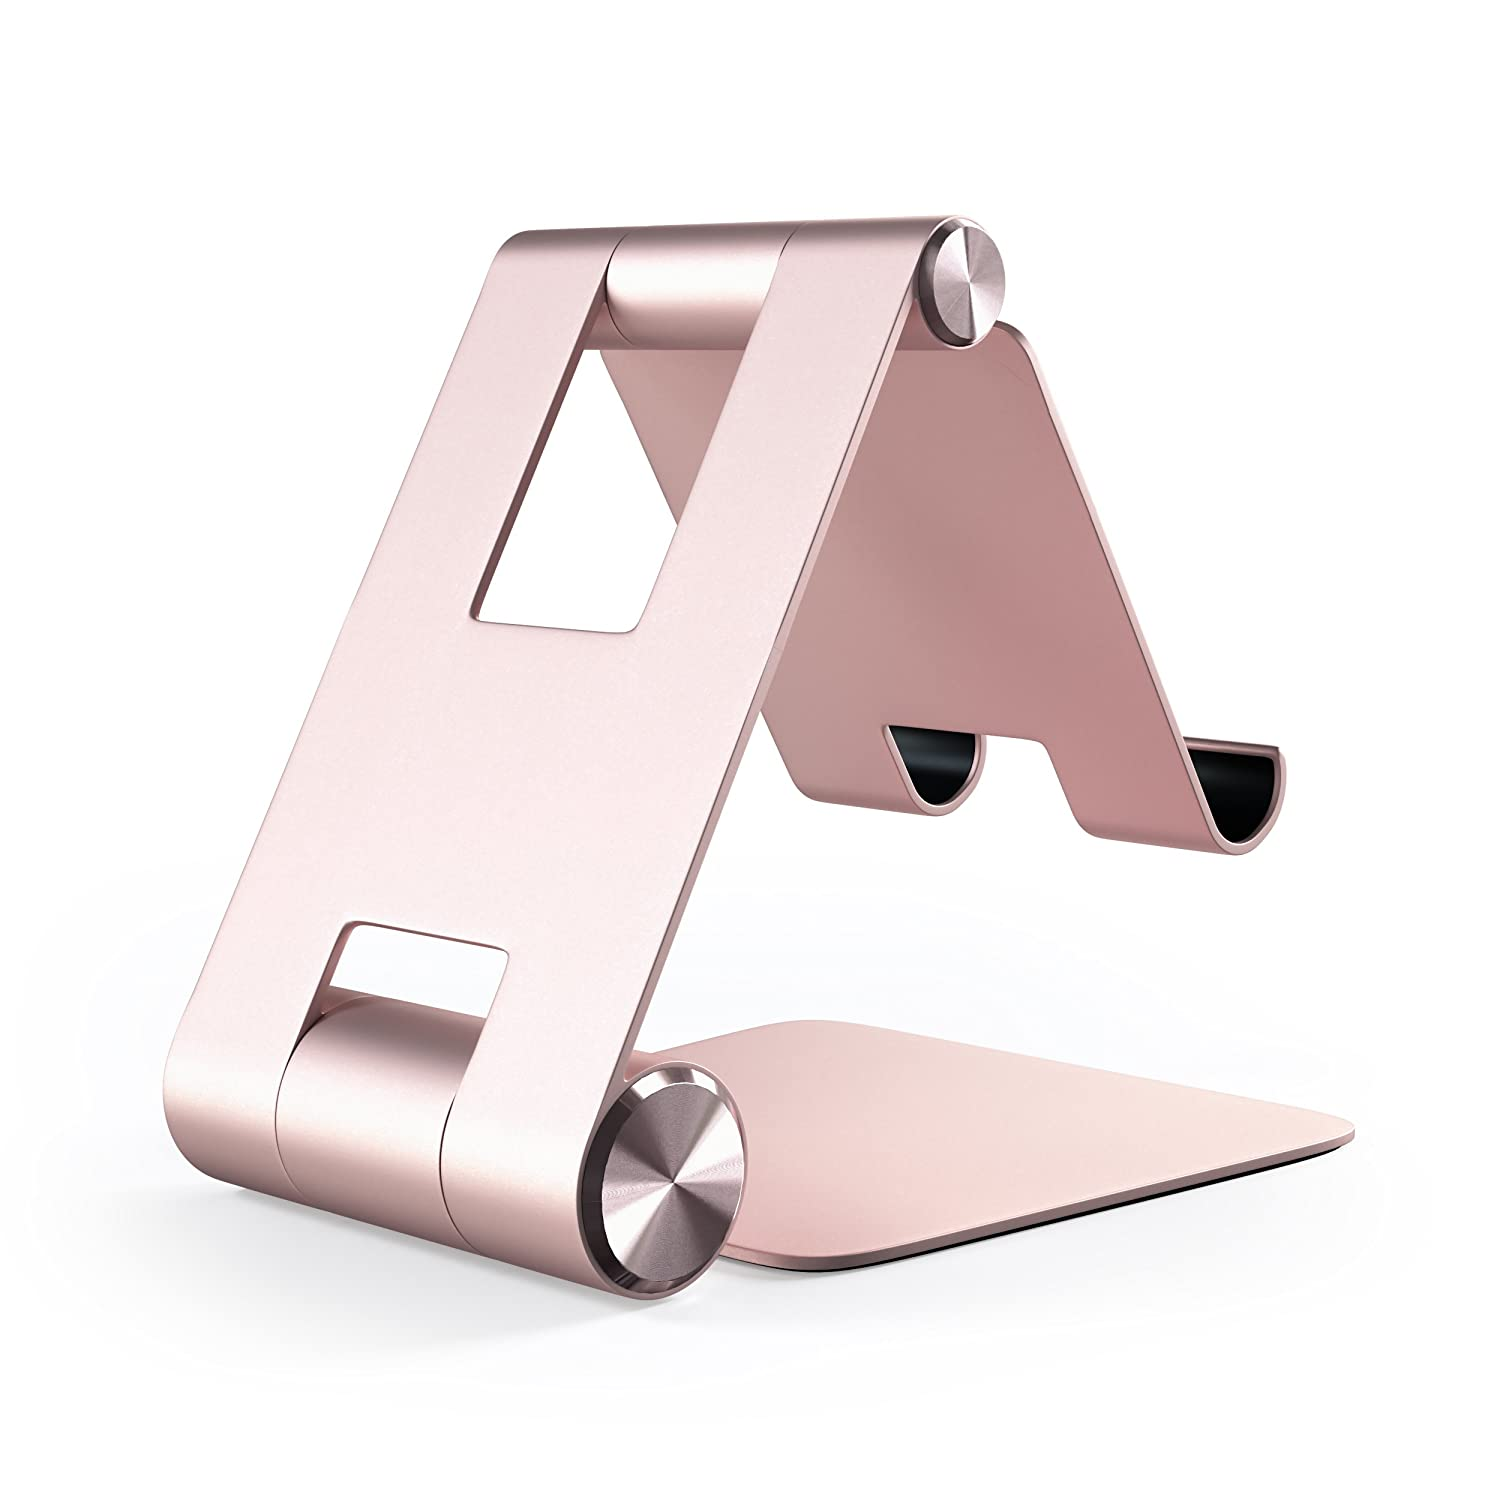 2018 MacBook Air Rose Gold iPhone Xs Max//XS//XR Compatible with 2018 iPad Pro Satechi R1 Aluminum Multi-Angle Foldable Tablet Stand Microsoft Surface Go 8 Plus//8 Samsung S9 Plus//S9